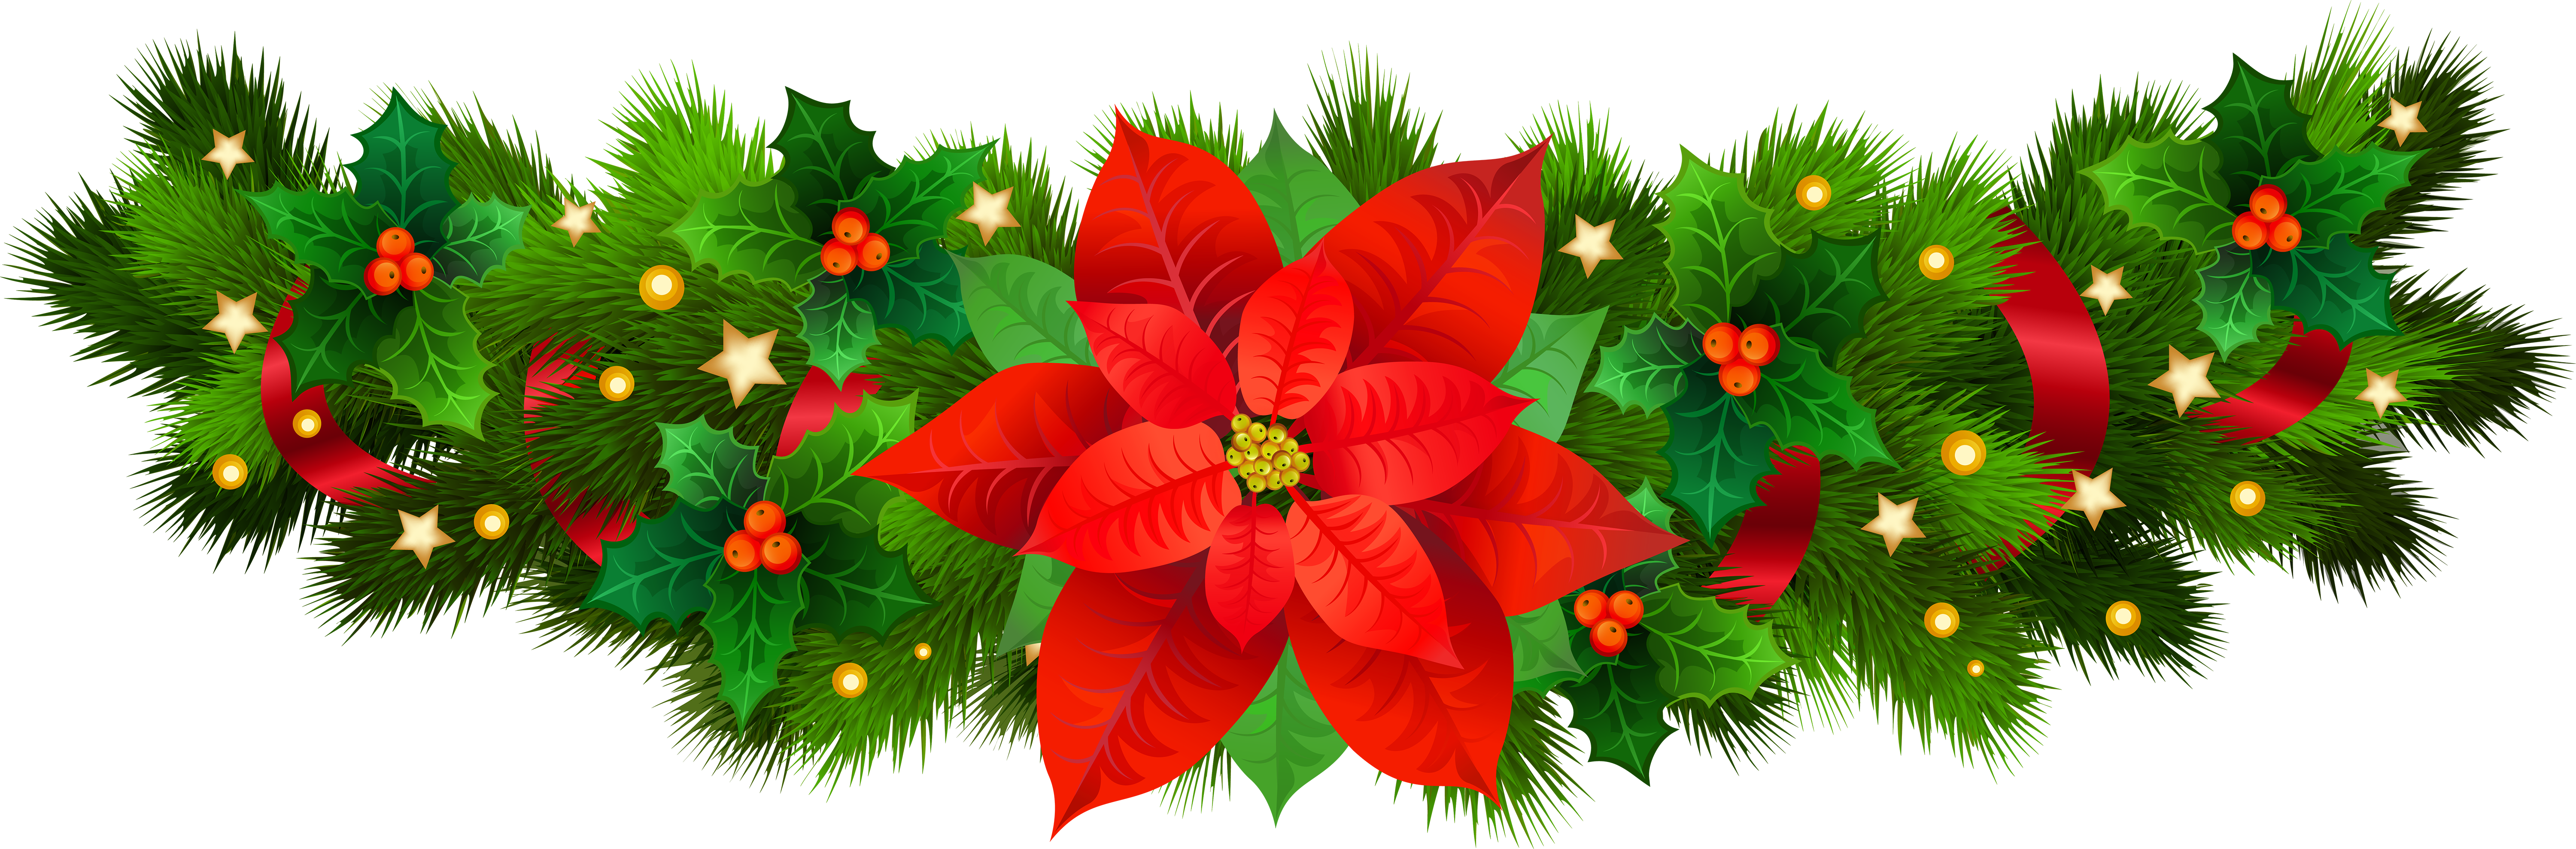 Poinsettia clipart poinsetta. Christmas decorative with png